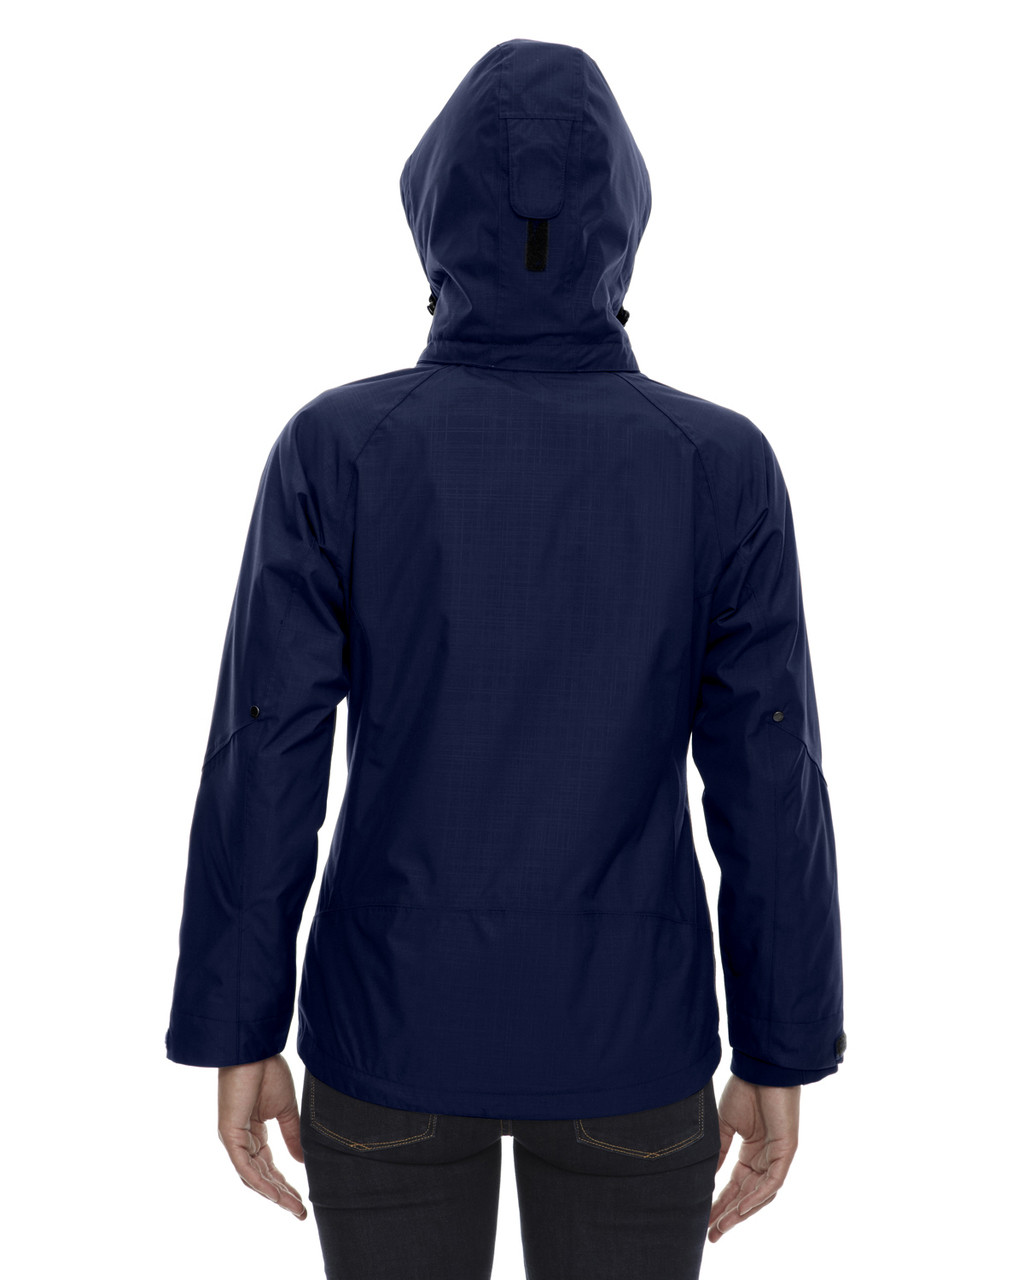 Classic Navy - back 78178 North End Caprice 3-in-1 Jacket with Soft Shell Liner | Blankclothing.ca